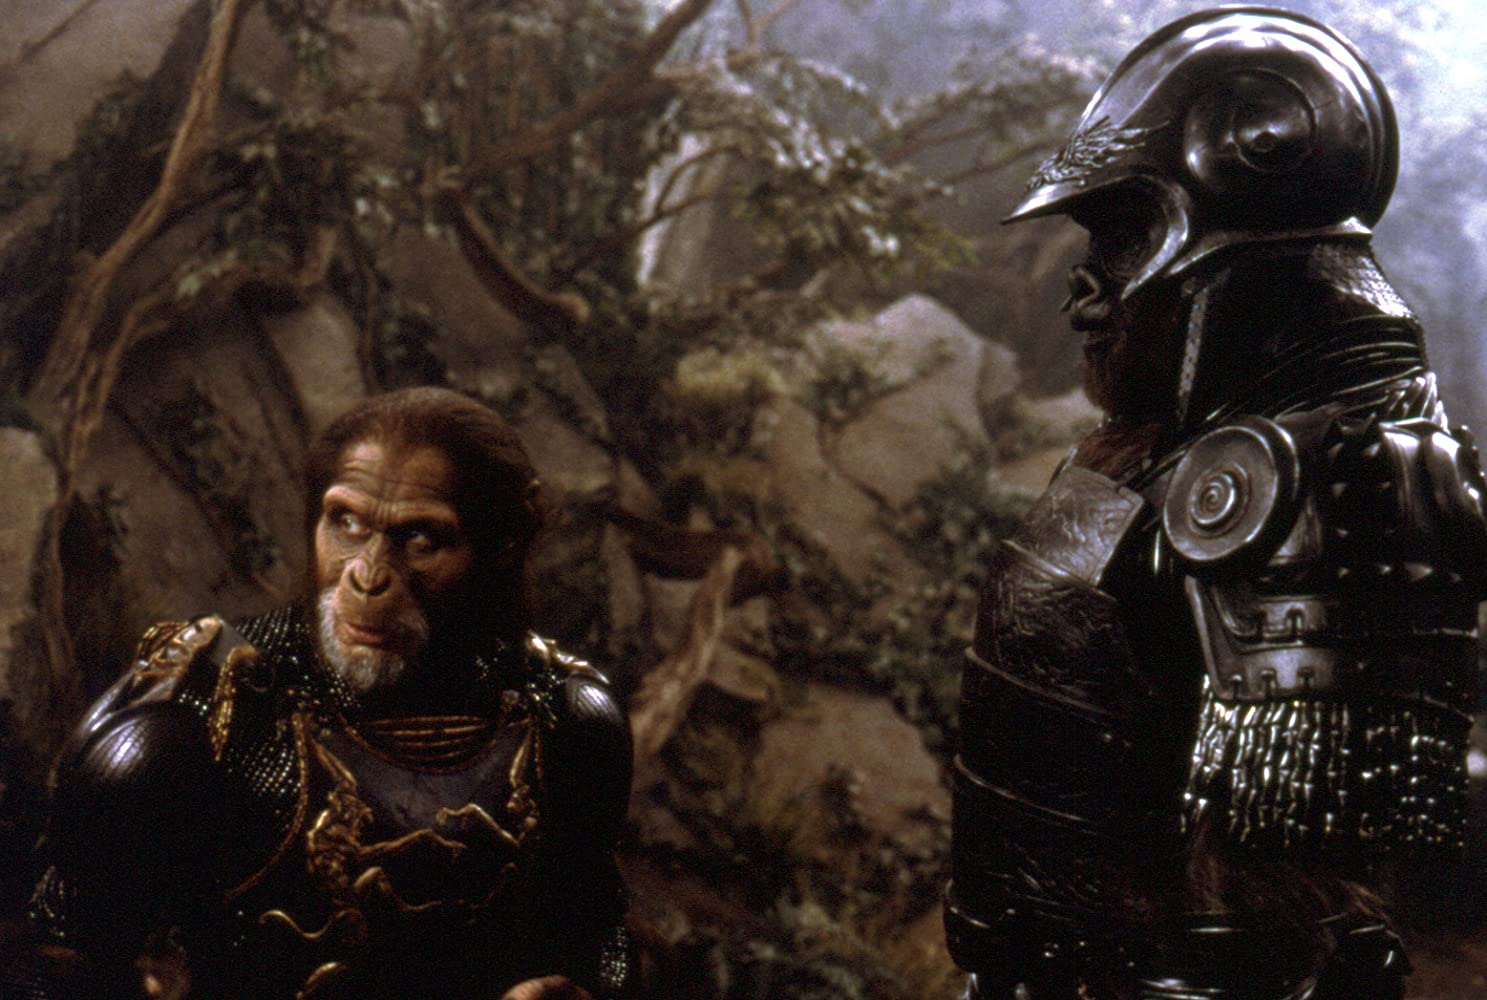 Tim Roth and Michael Clarke Duncan in Planet of the Apes (2001)